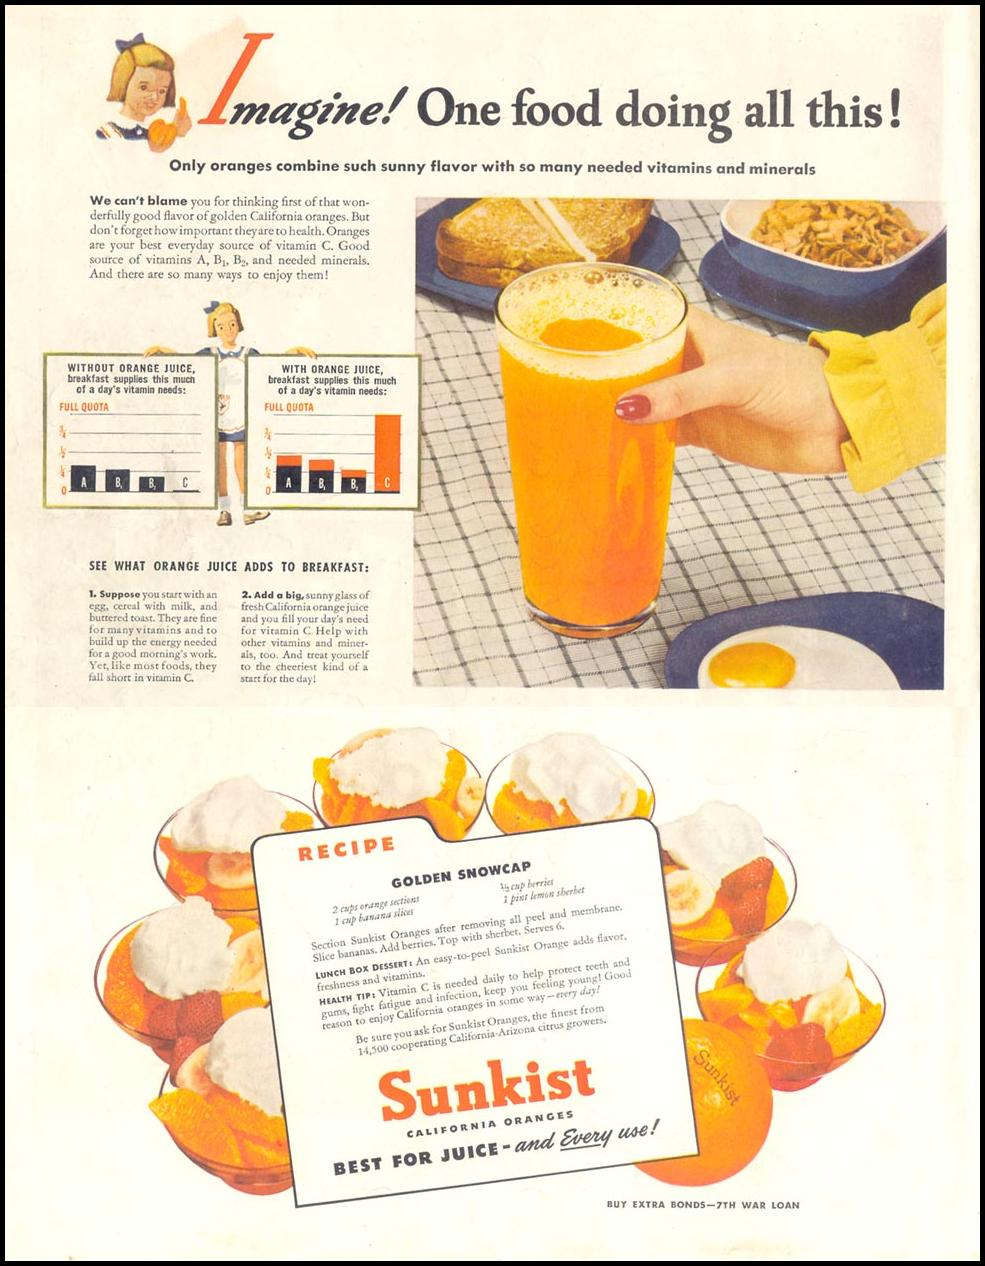 SUNKIST CALIFIORNIA ORANGES SATURDAY EVENING POST 05/19/1945 BACK COVER